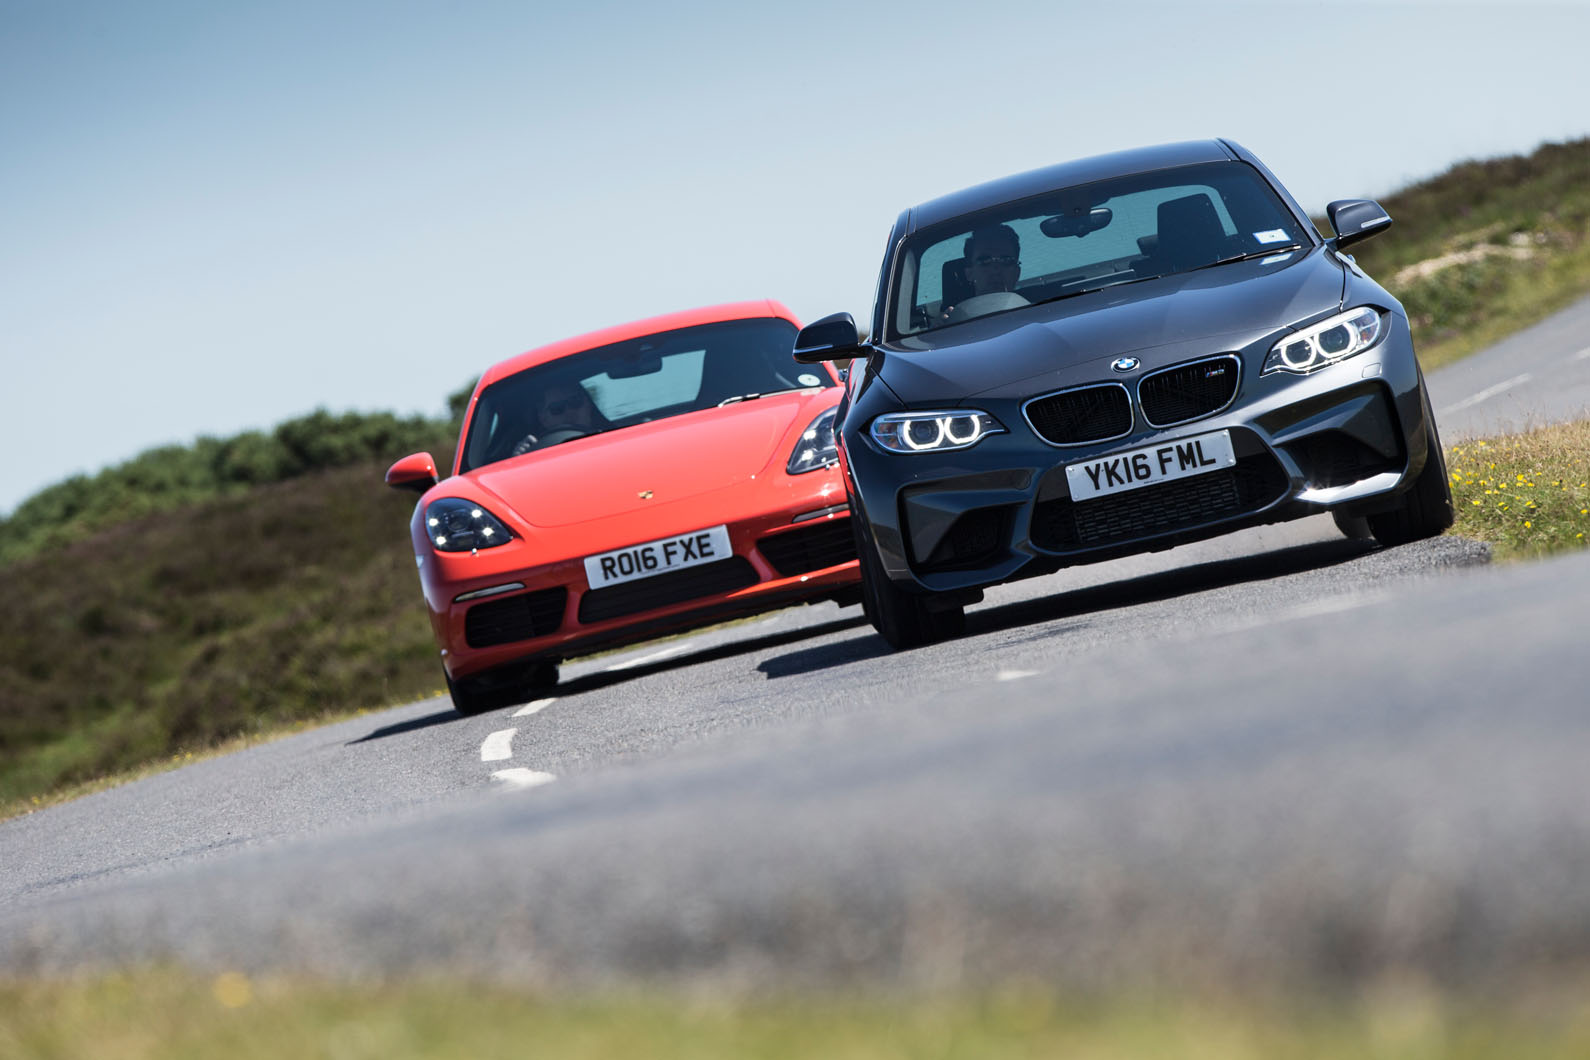 Porsche 718 Cayman S Vs Bmw M2 Vs Jaguar F Type Battle Of The